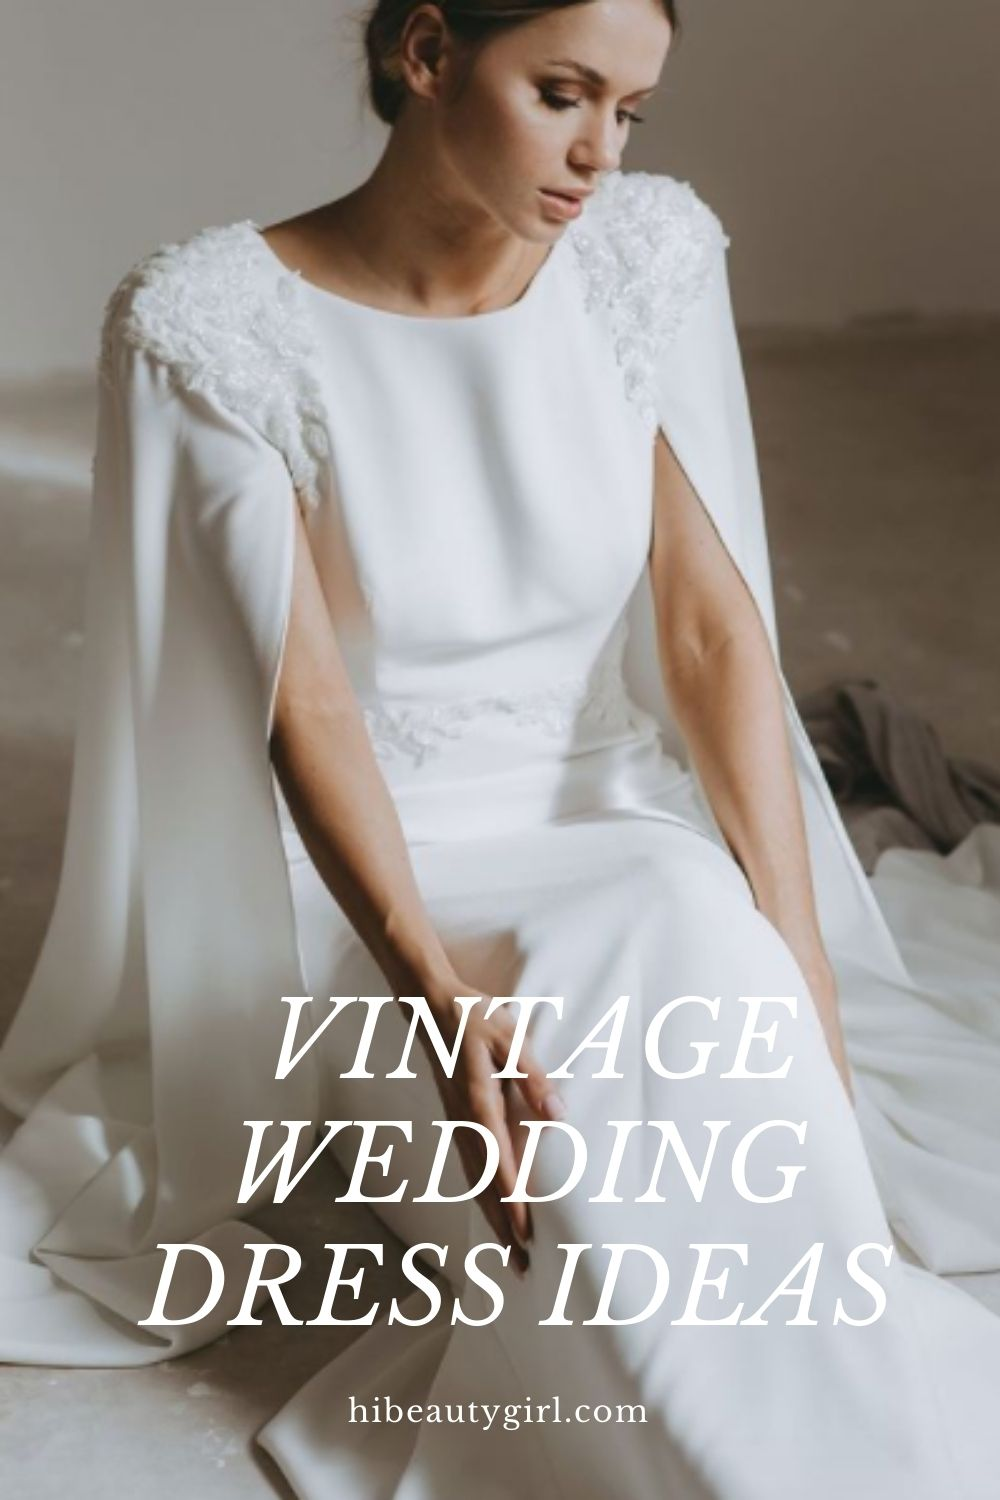 Are Wedding Dresses In Style?